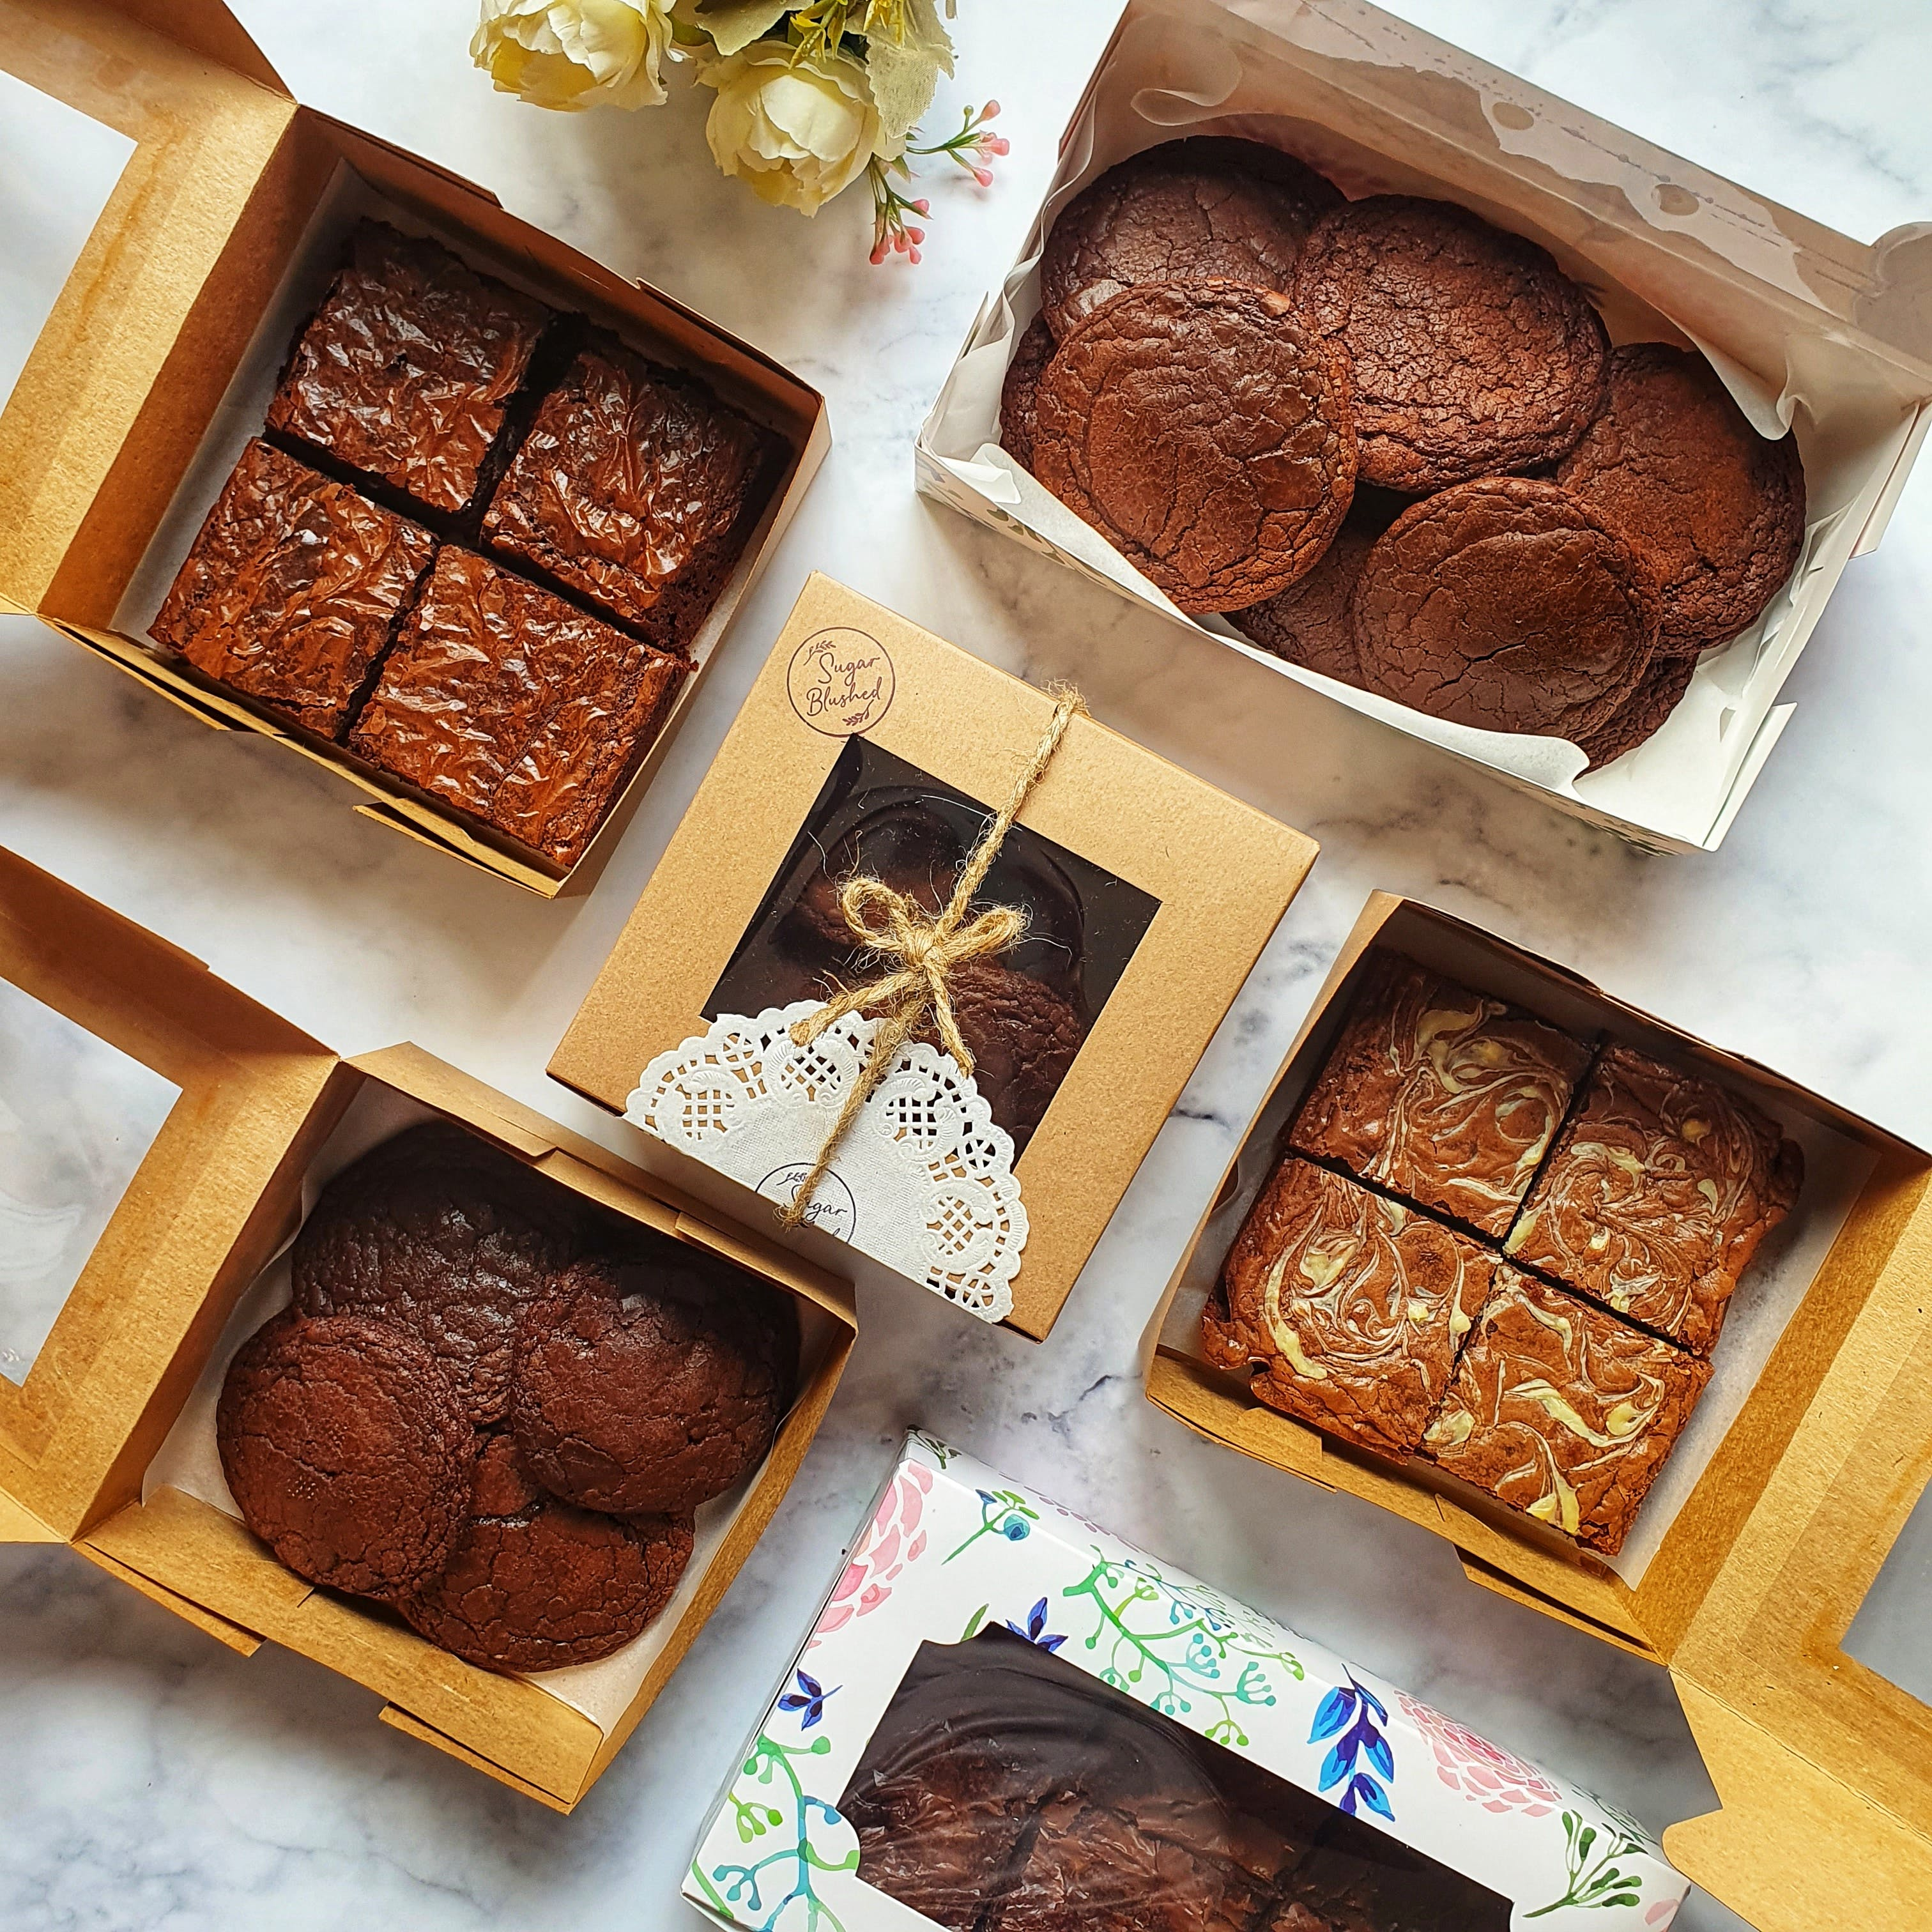 Brown,Food,Ingredient,Recipe,Rectangle,Cuisine,Dish,Cocoa solids,Sweetness,Baked goods